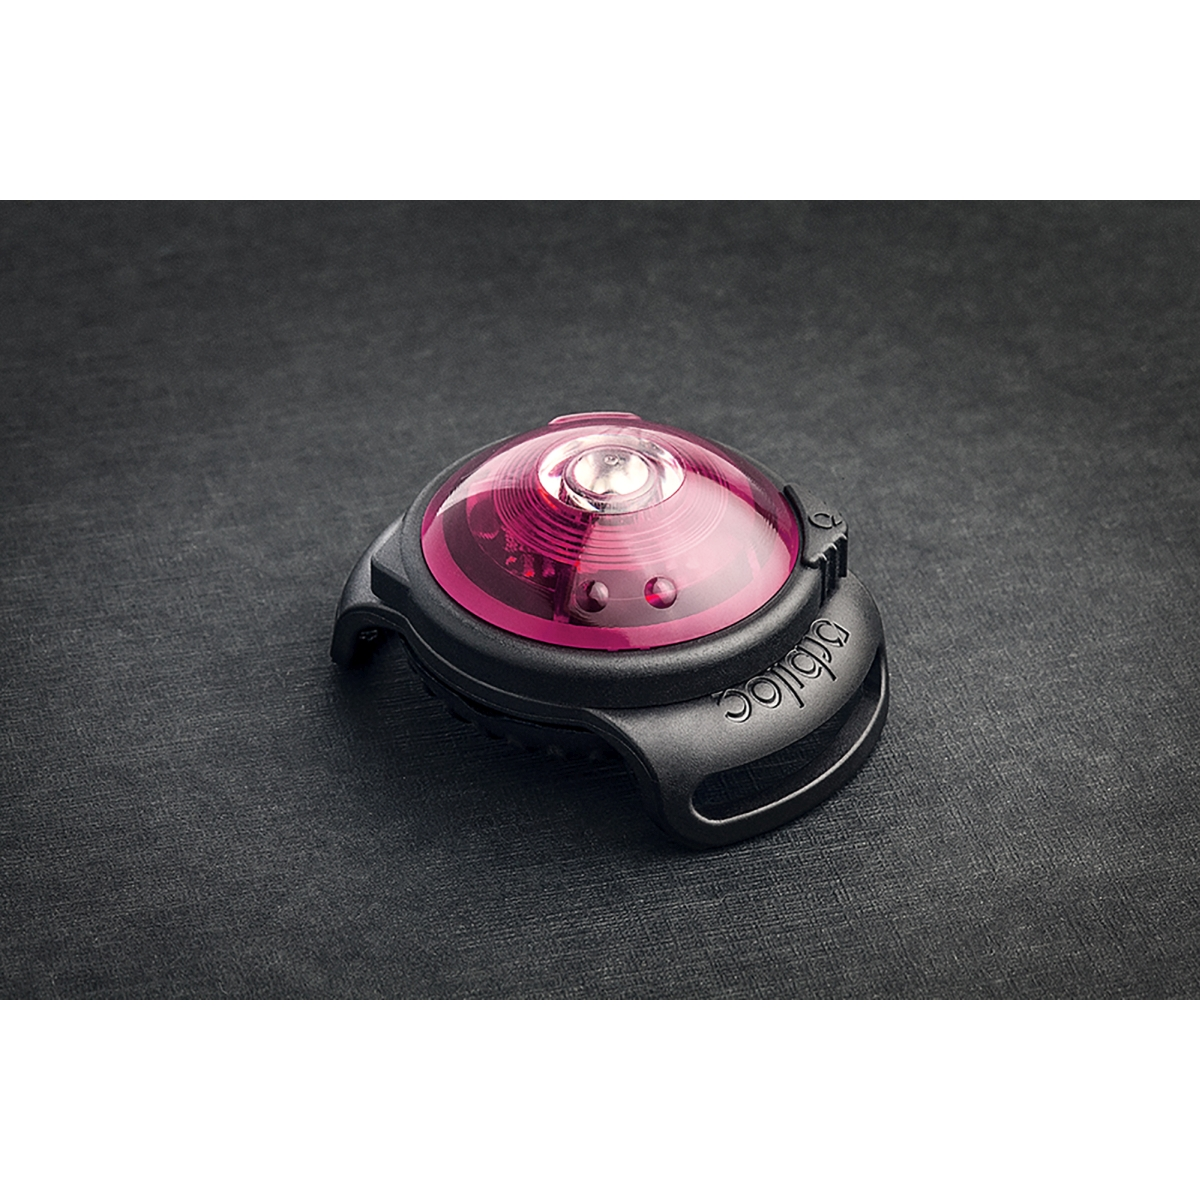 Orbiloc - dog dual safety light roze